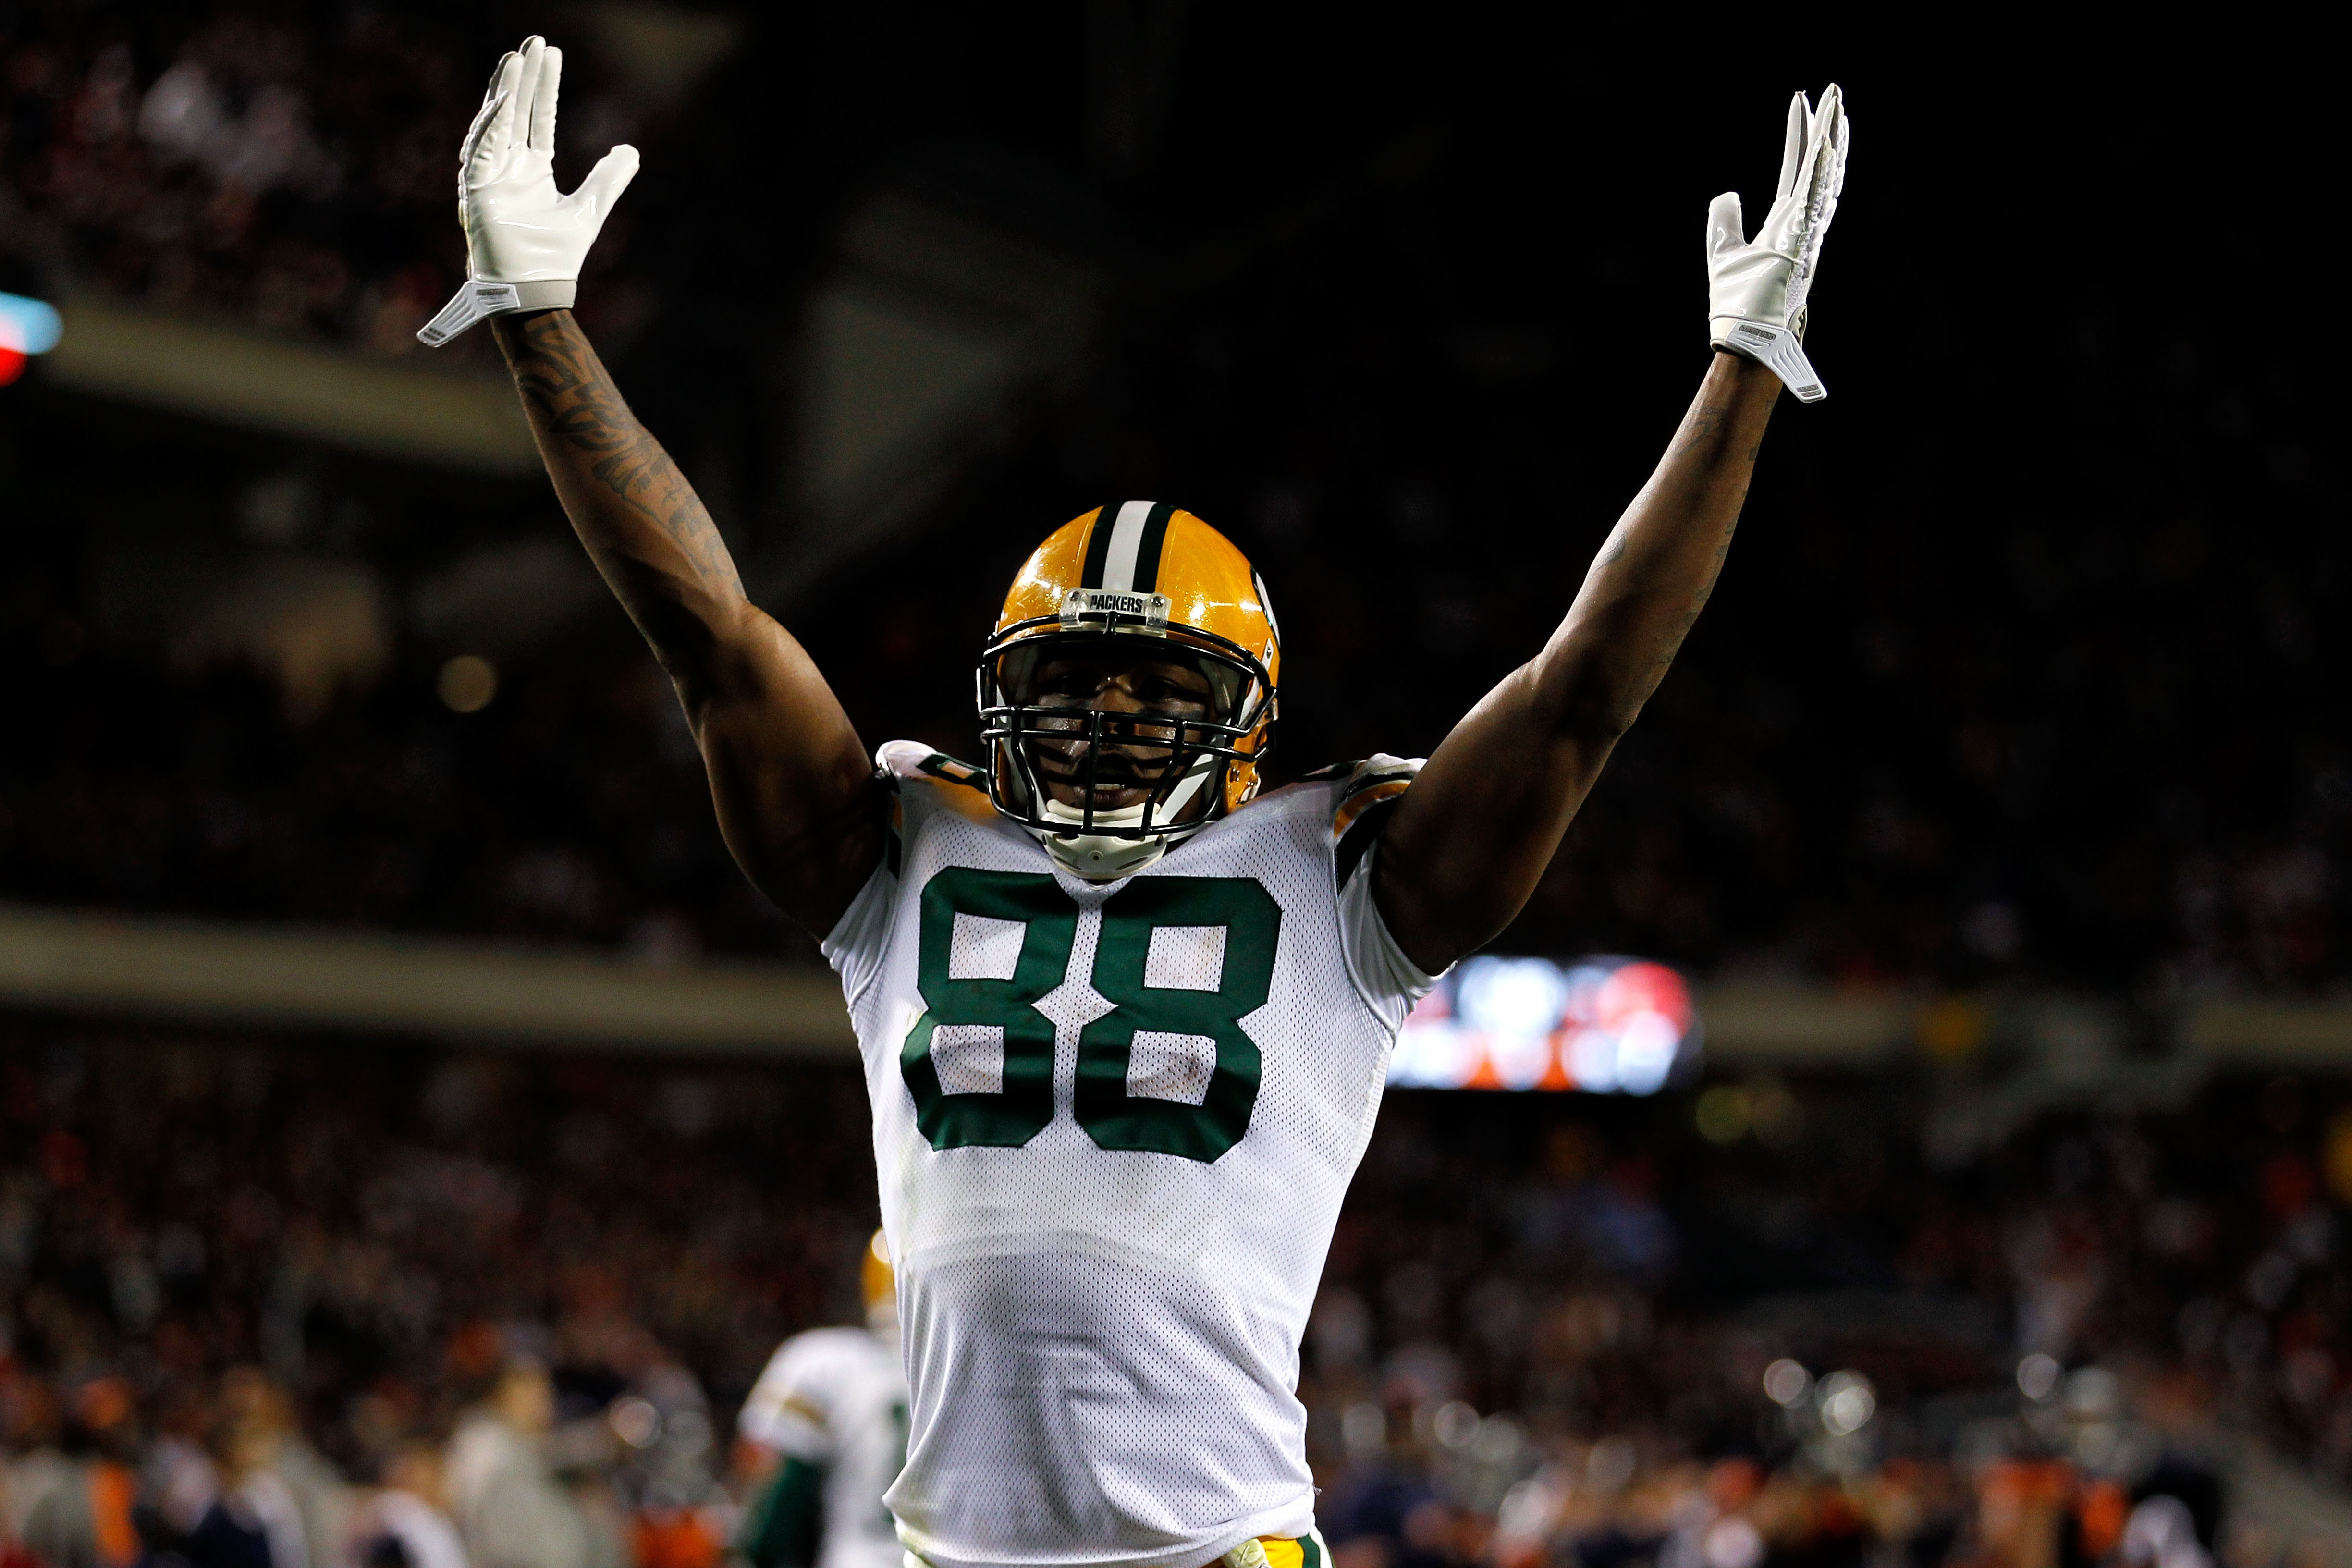 CHICAGO - SEPTEMBER 27:  Jermichael Finley #88 of the Green Bay Packers reacts in the second half against the Chicago Bears at Soldier Field on September 27, 2010 in Chicago, Illinois. The Bears won 20-17. (Photo by Jonathan Daniel/Getty Images)